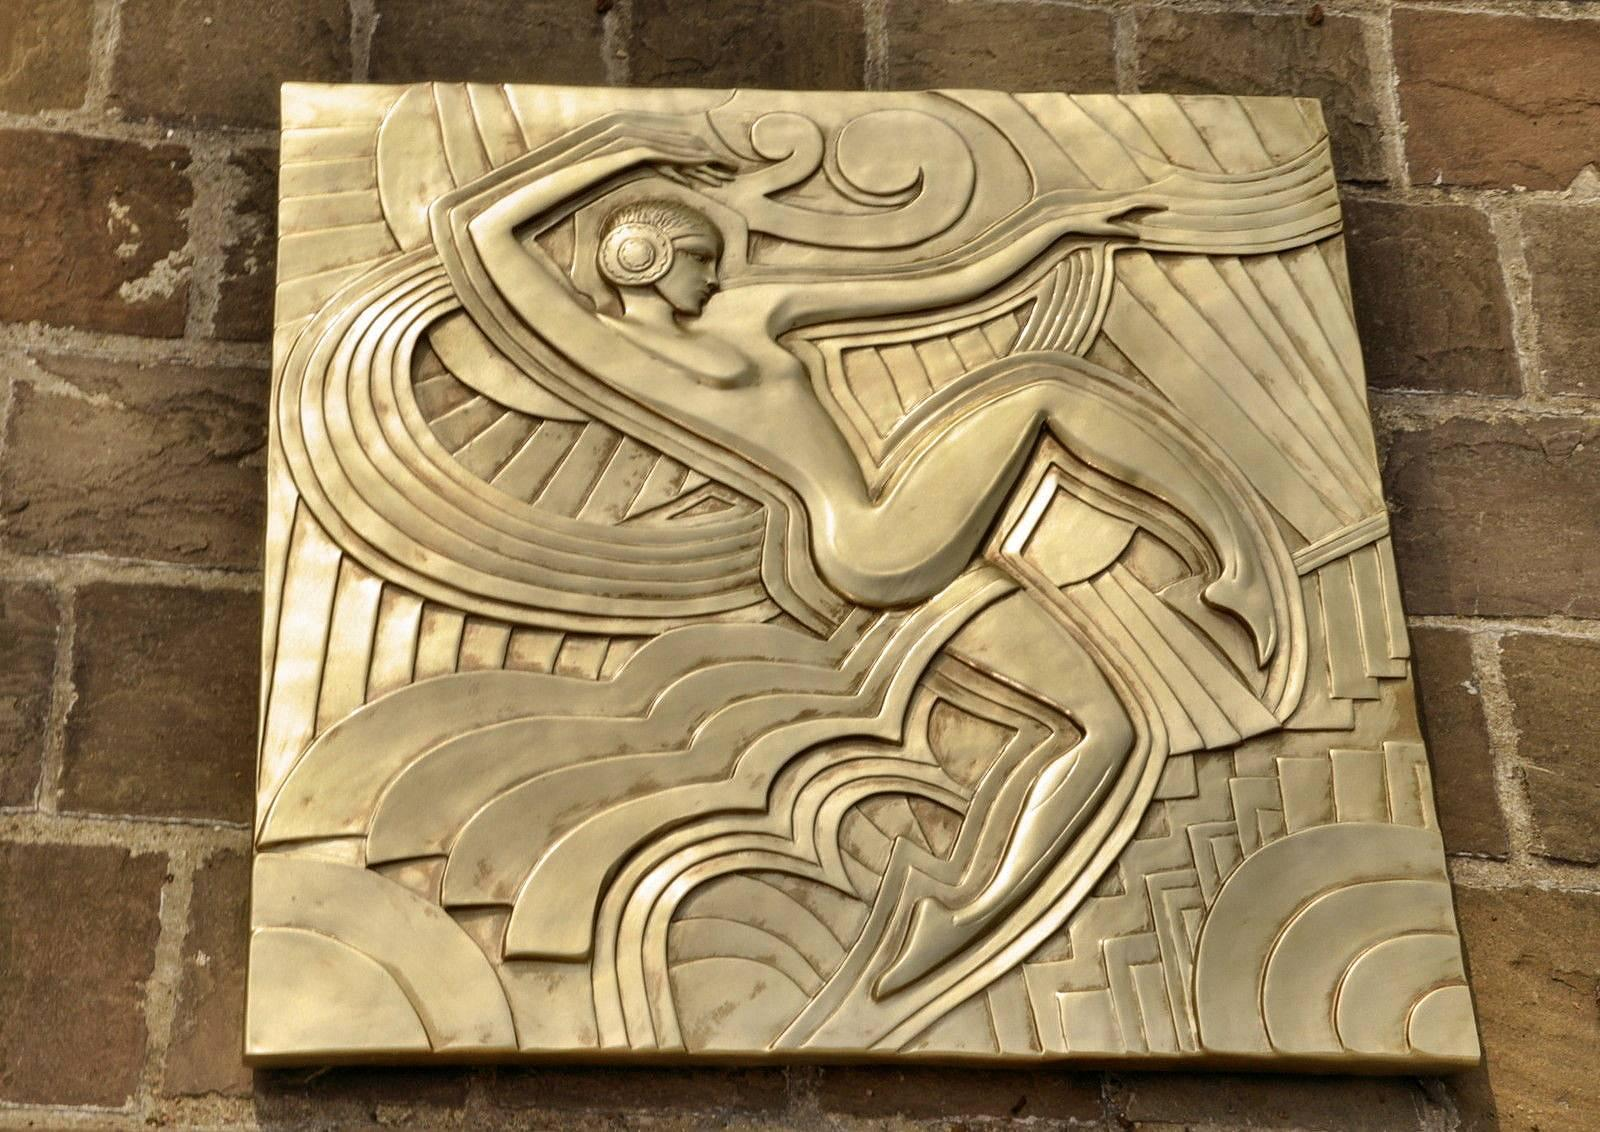 Art Deco \'Folies Bergeres\' Wall Plaque For Sale at 1stdibs